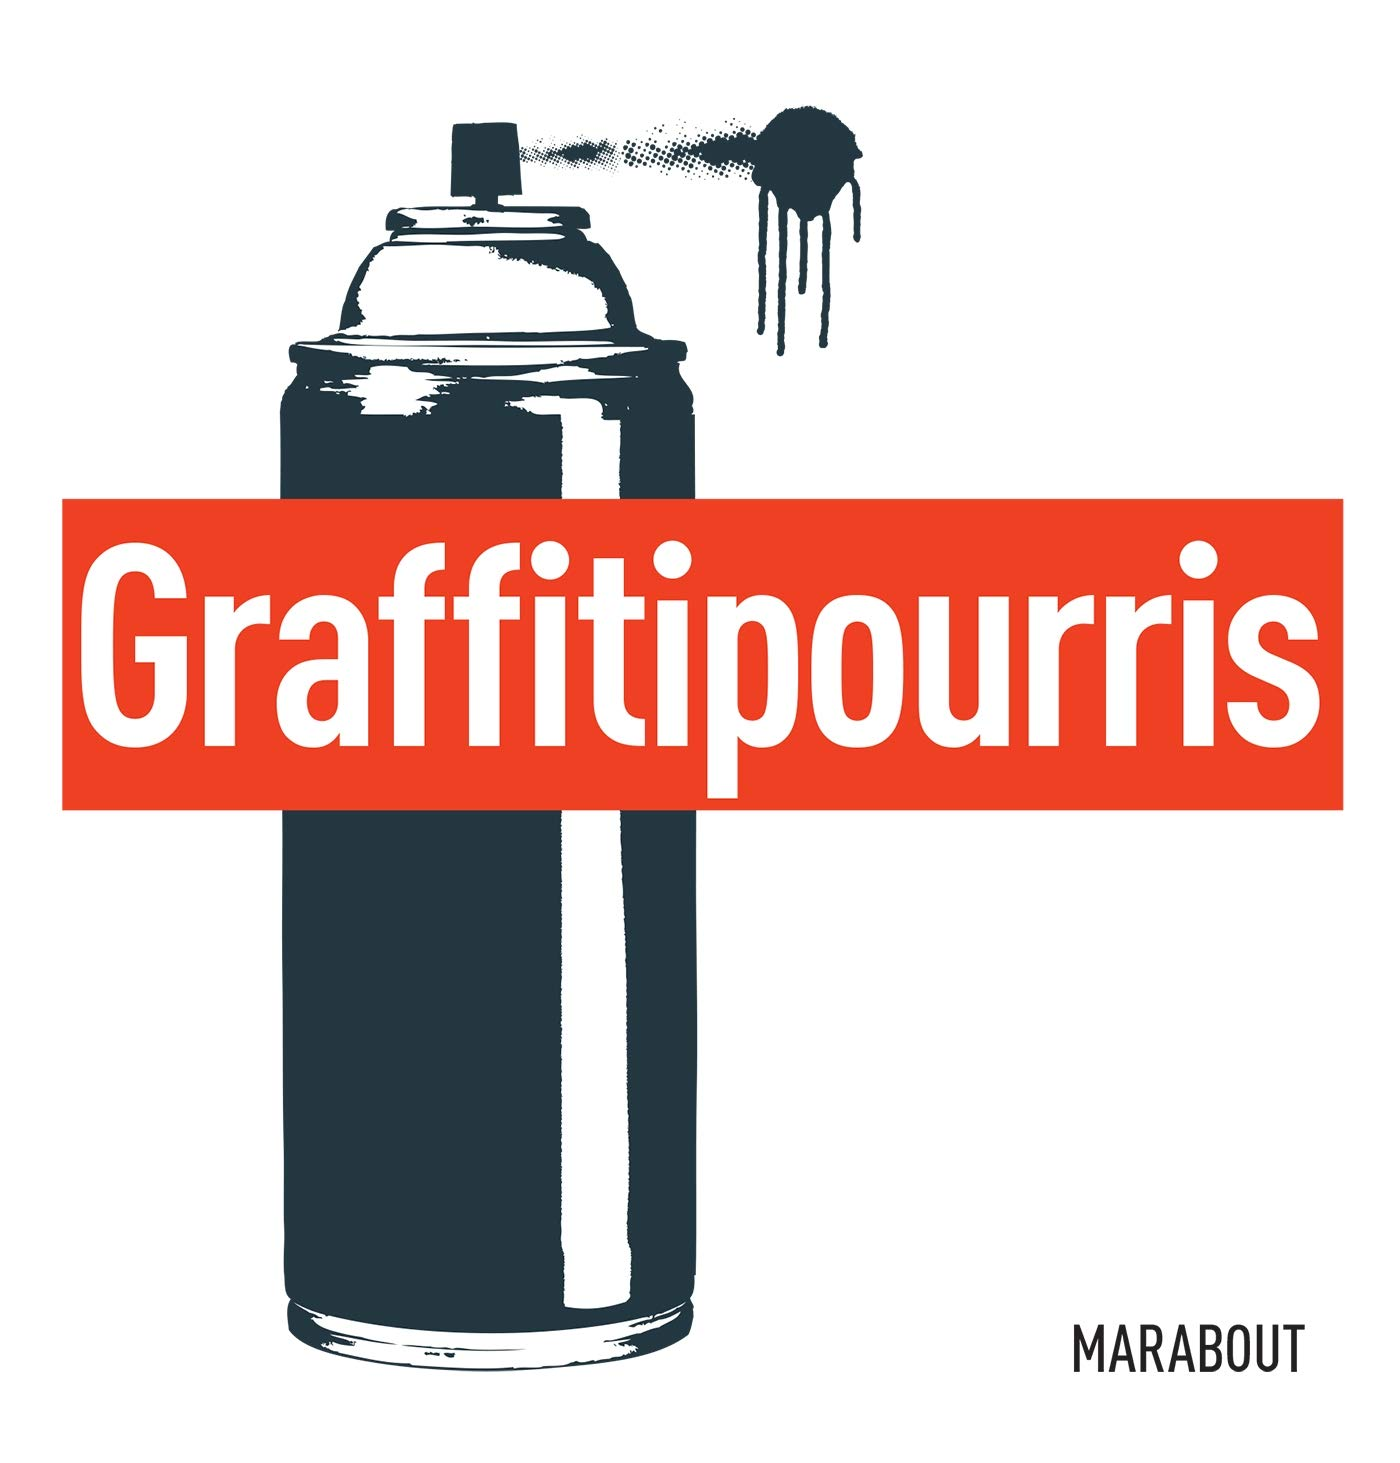 Graffitipourris